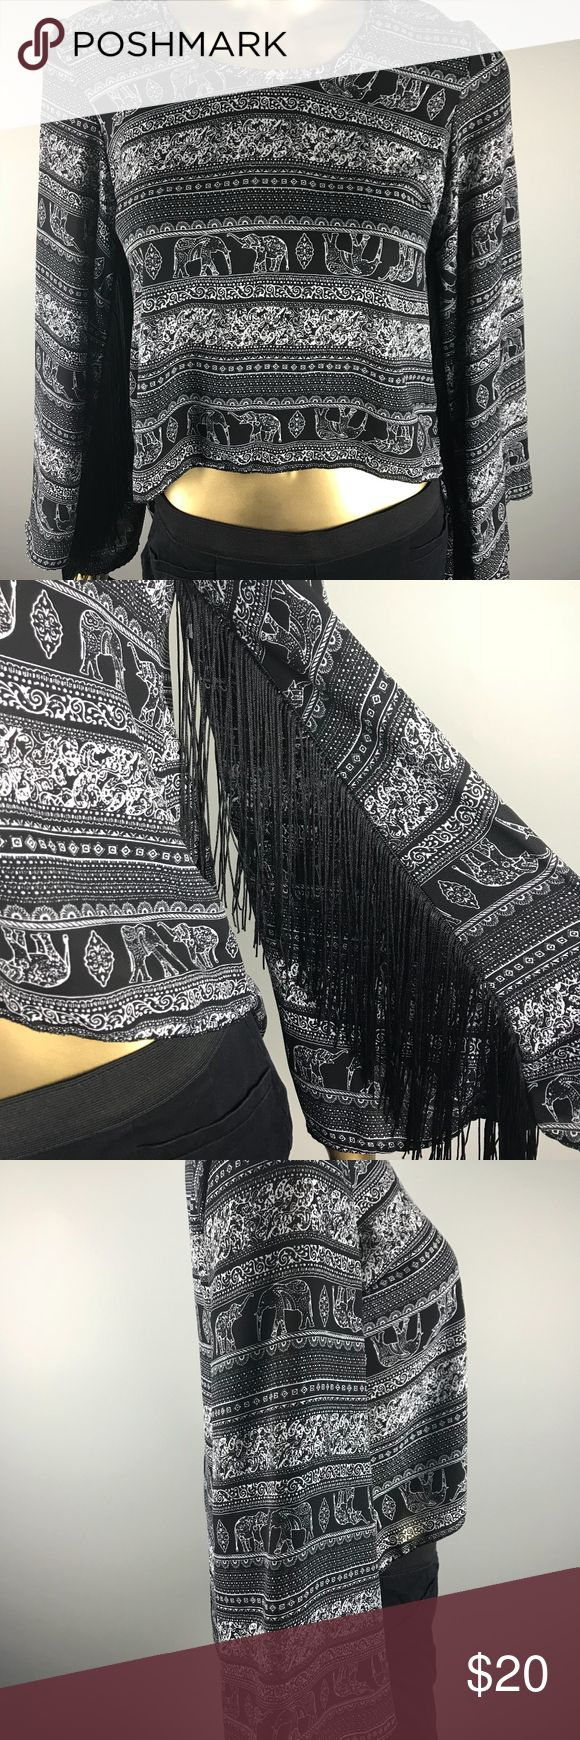 See You Monday Elephant Boho Crop Top Fringes, S Brand: See you monday Color: Black and white Style: Beautiful unique crop top with bat wing arm sleeves. Sleeves include fun fringes along the side, making this top totally boho! Perfect for a summer concert or spring break! Size: Small See You Monday Tops Crop Tops